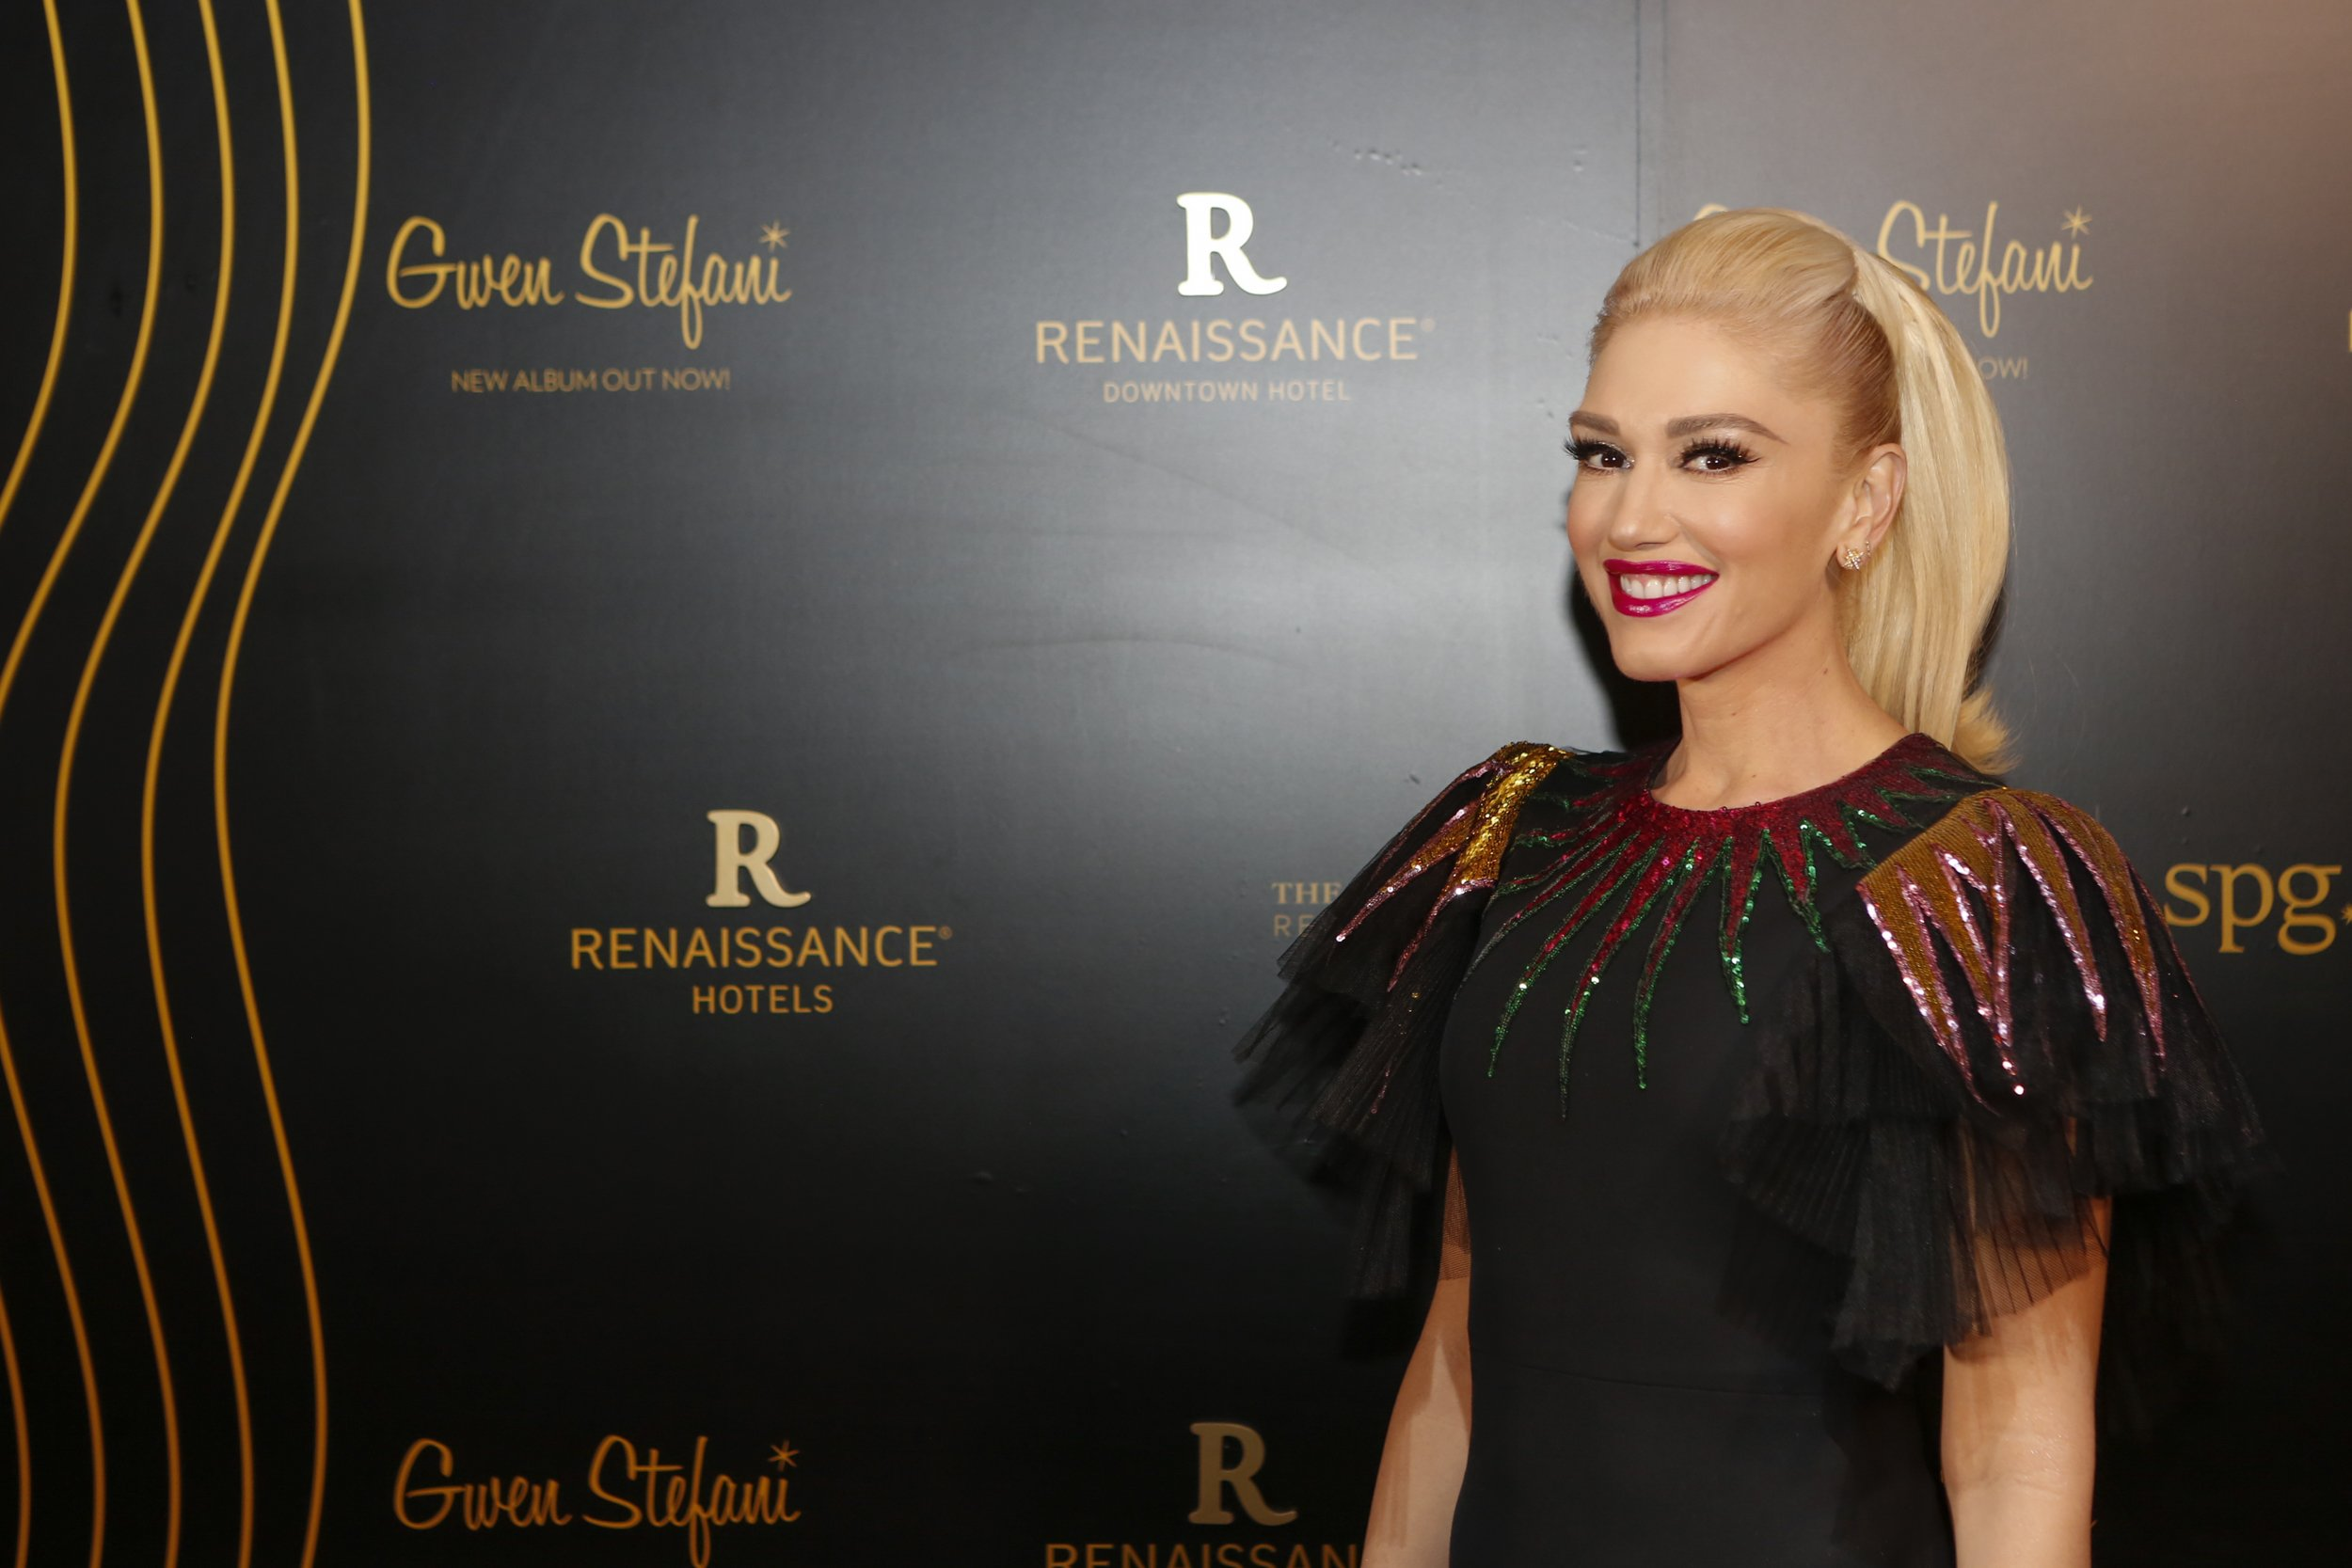 Gwen Stefani attends the opening of the Renaissance Downtown Hotel, Dubai on December 4, 2017 in Dubai, United Arab Emirates   Photo: Getty Images